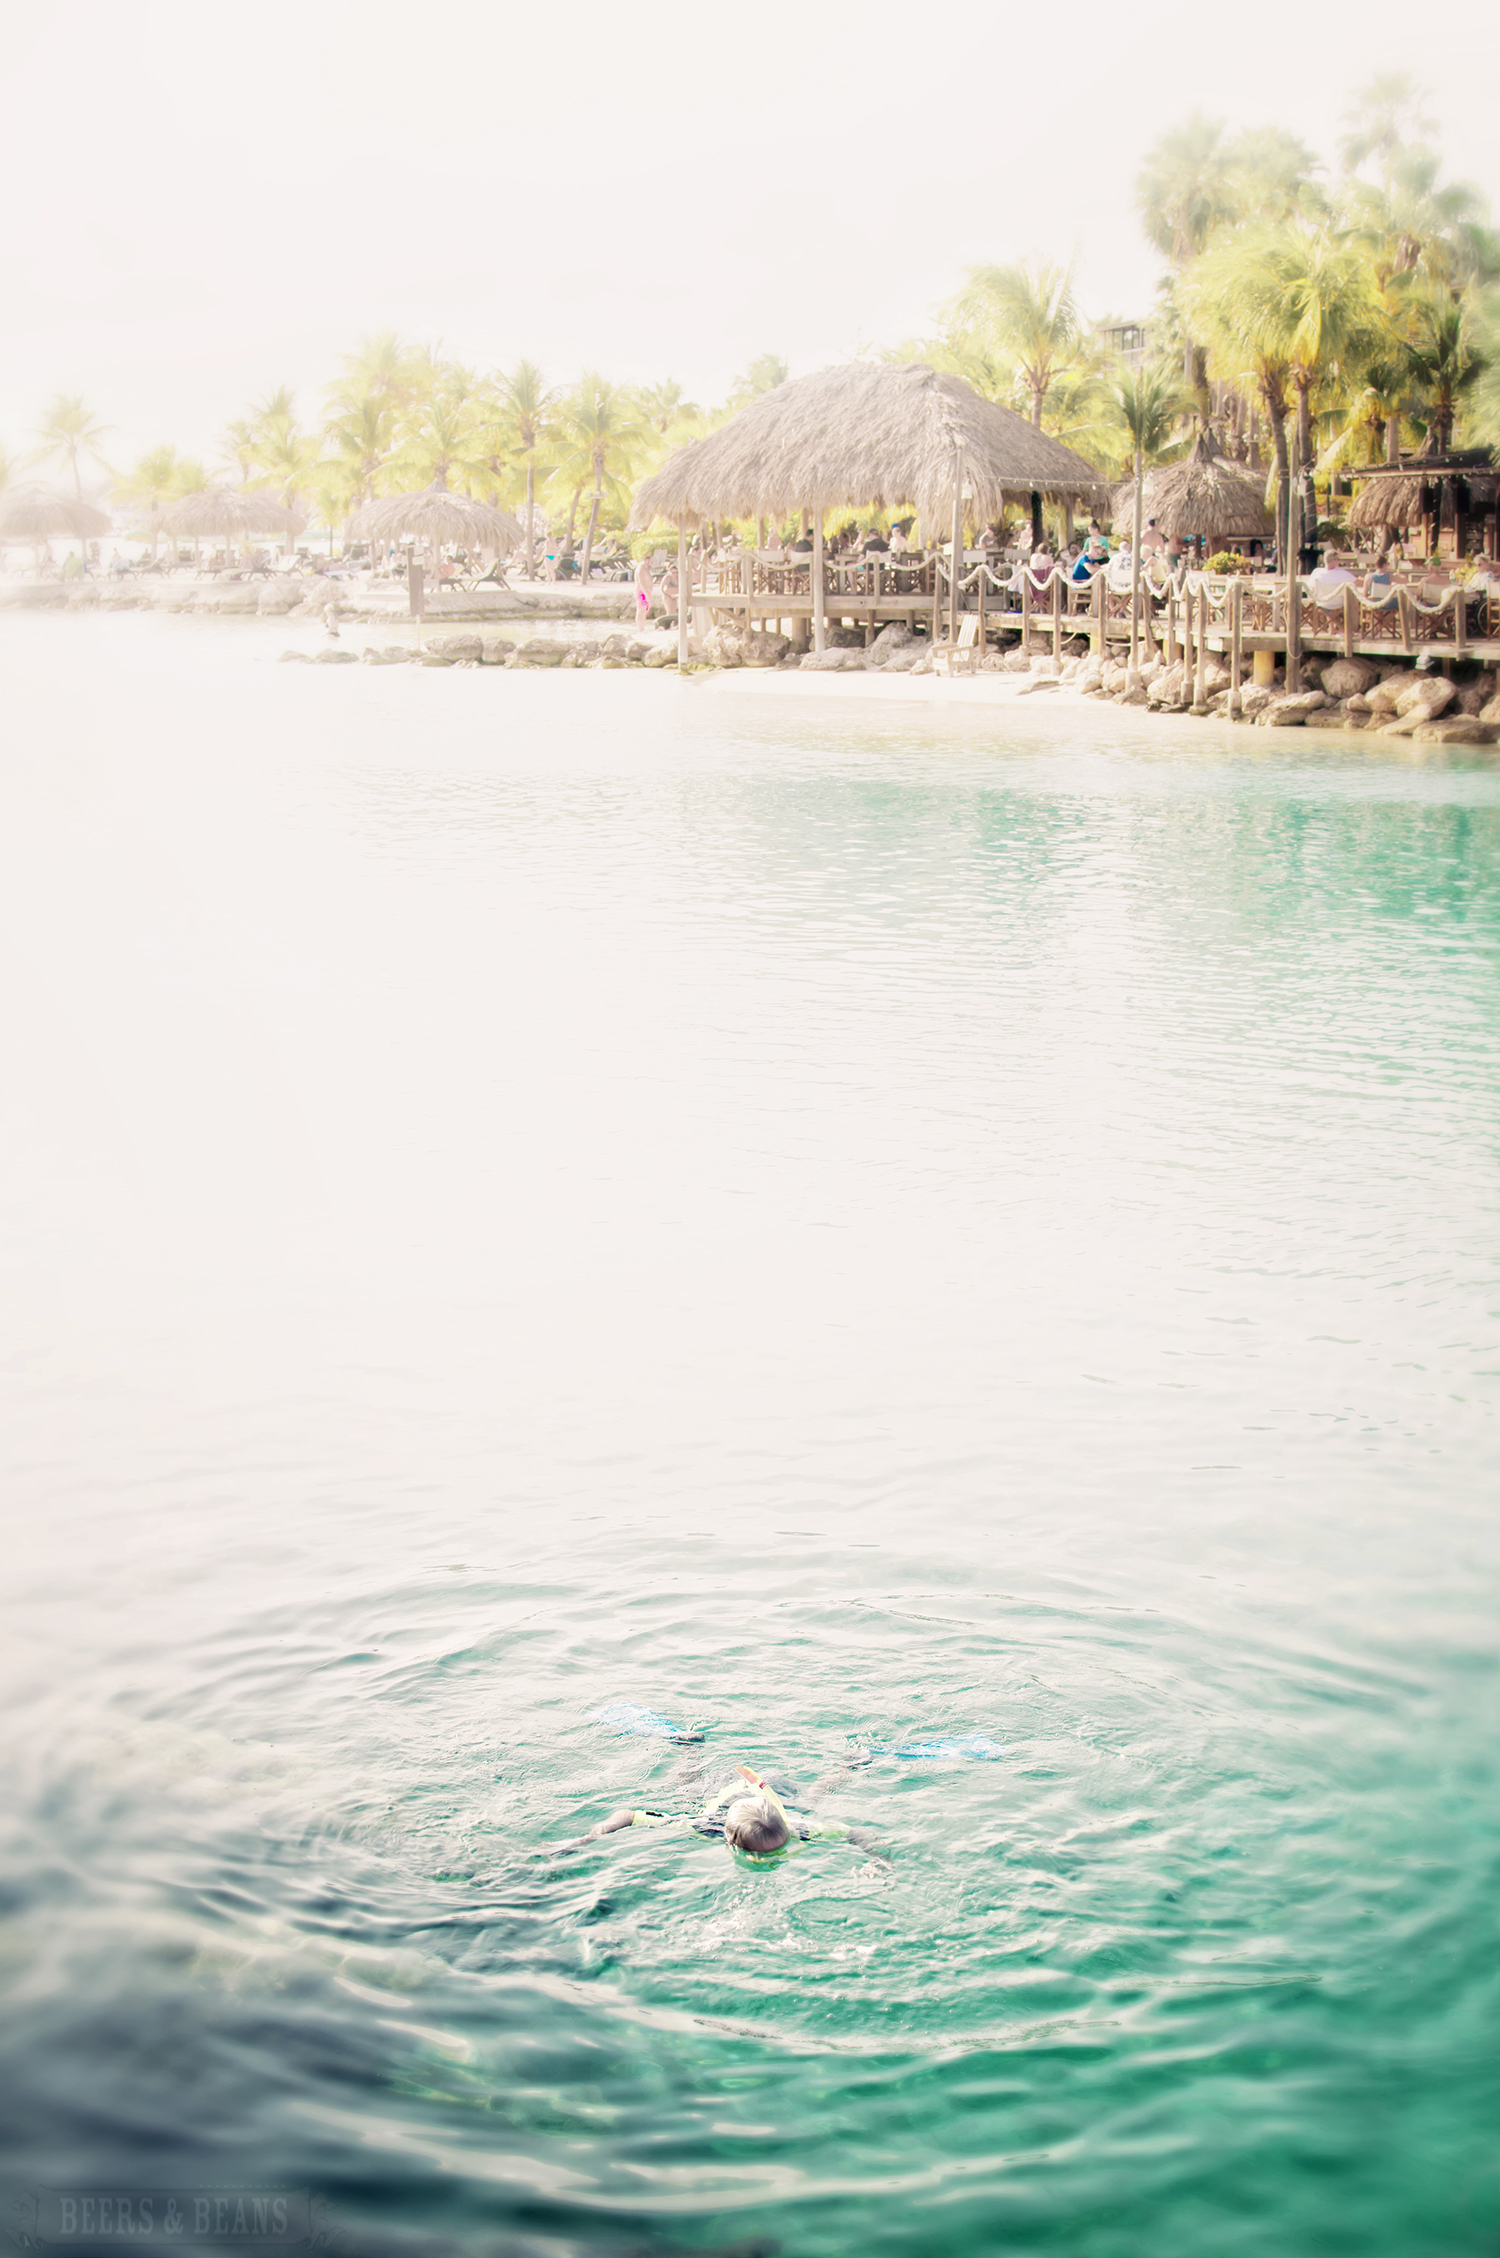 A man swimming in the warm blue waters of Curacao.